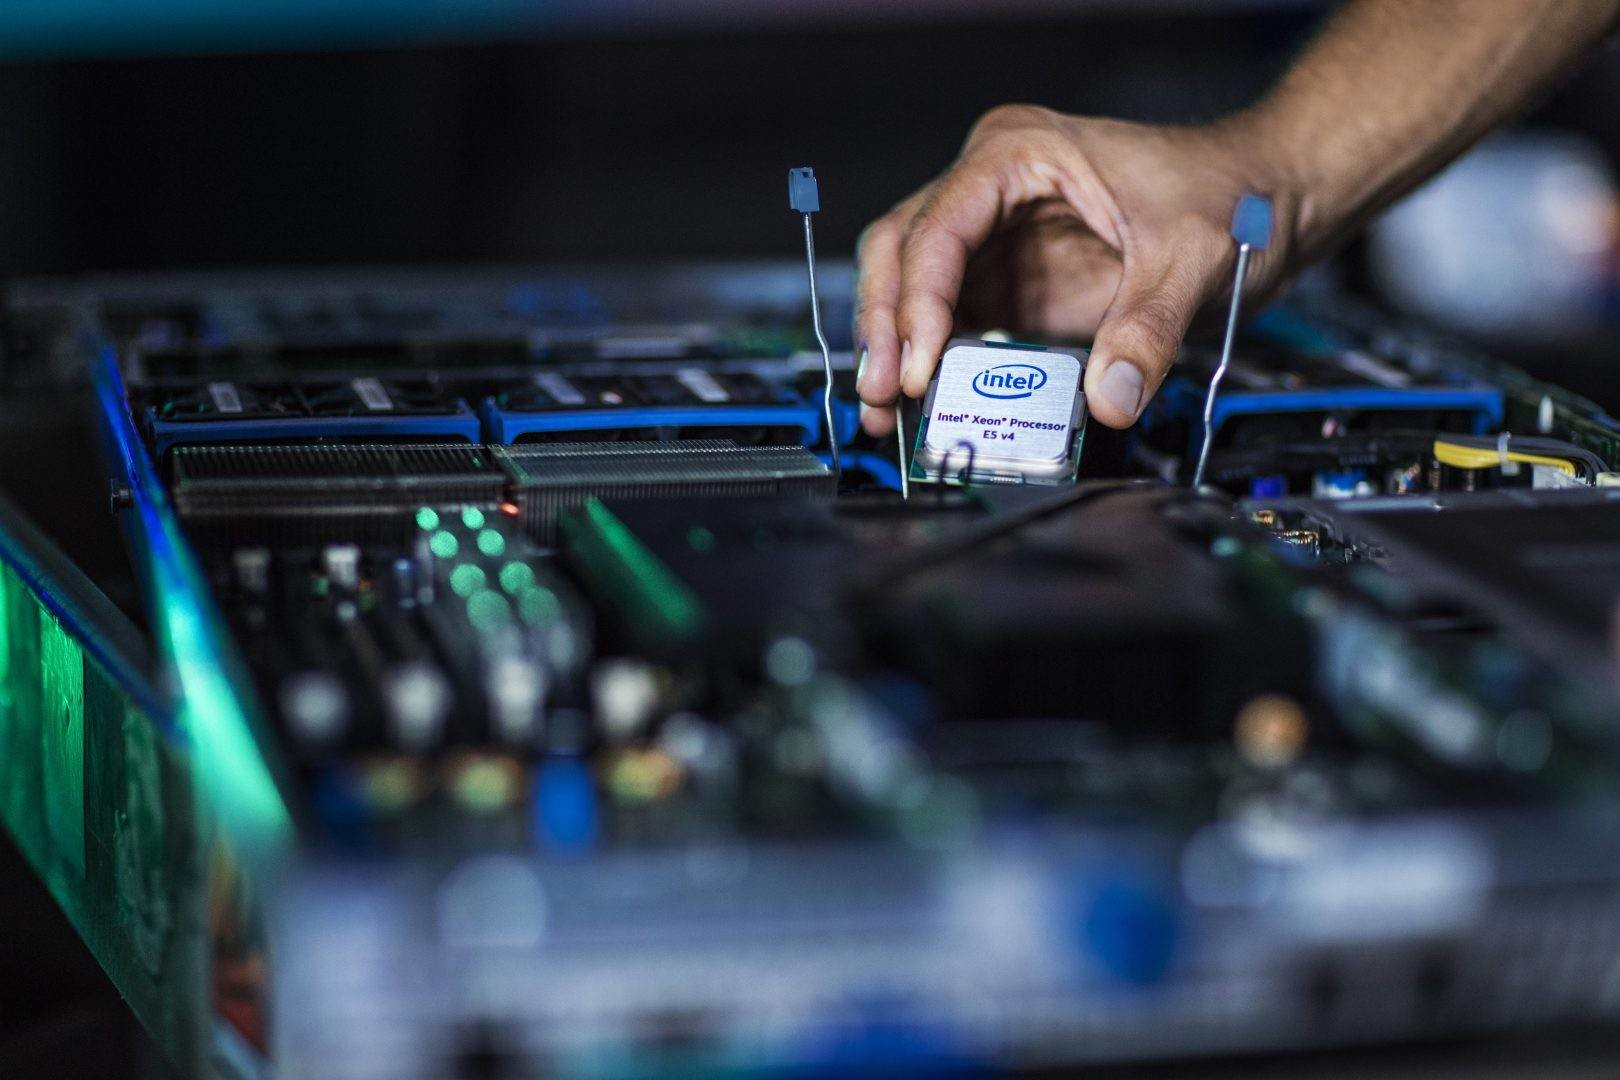 intel could make billioins off meltown specture insecure exploits processor